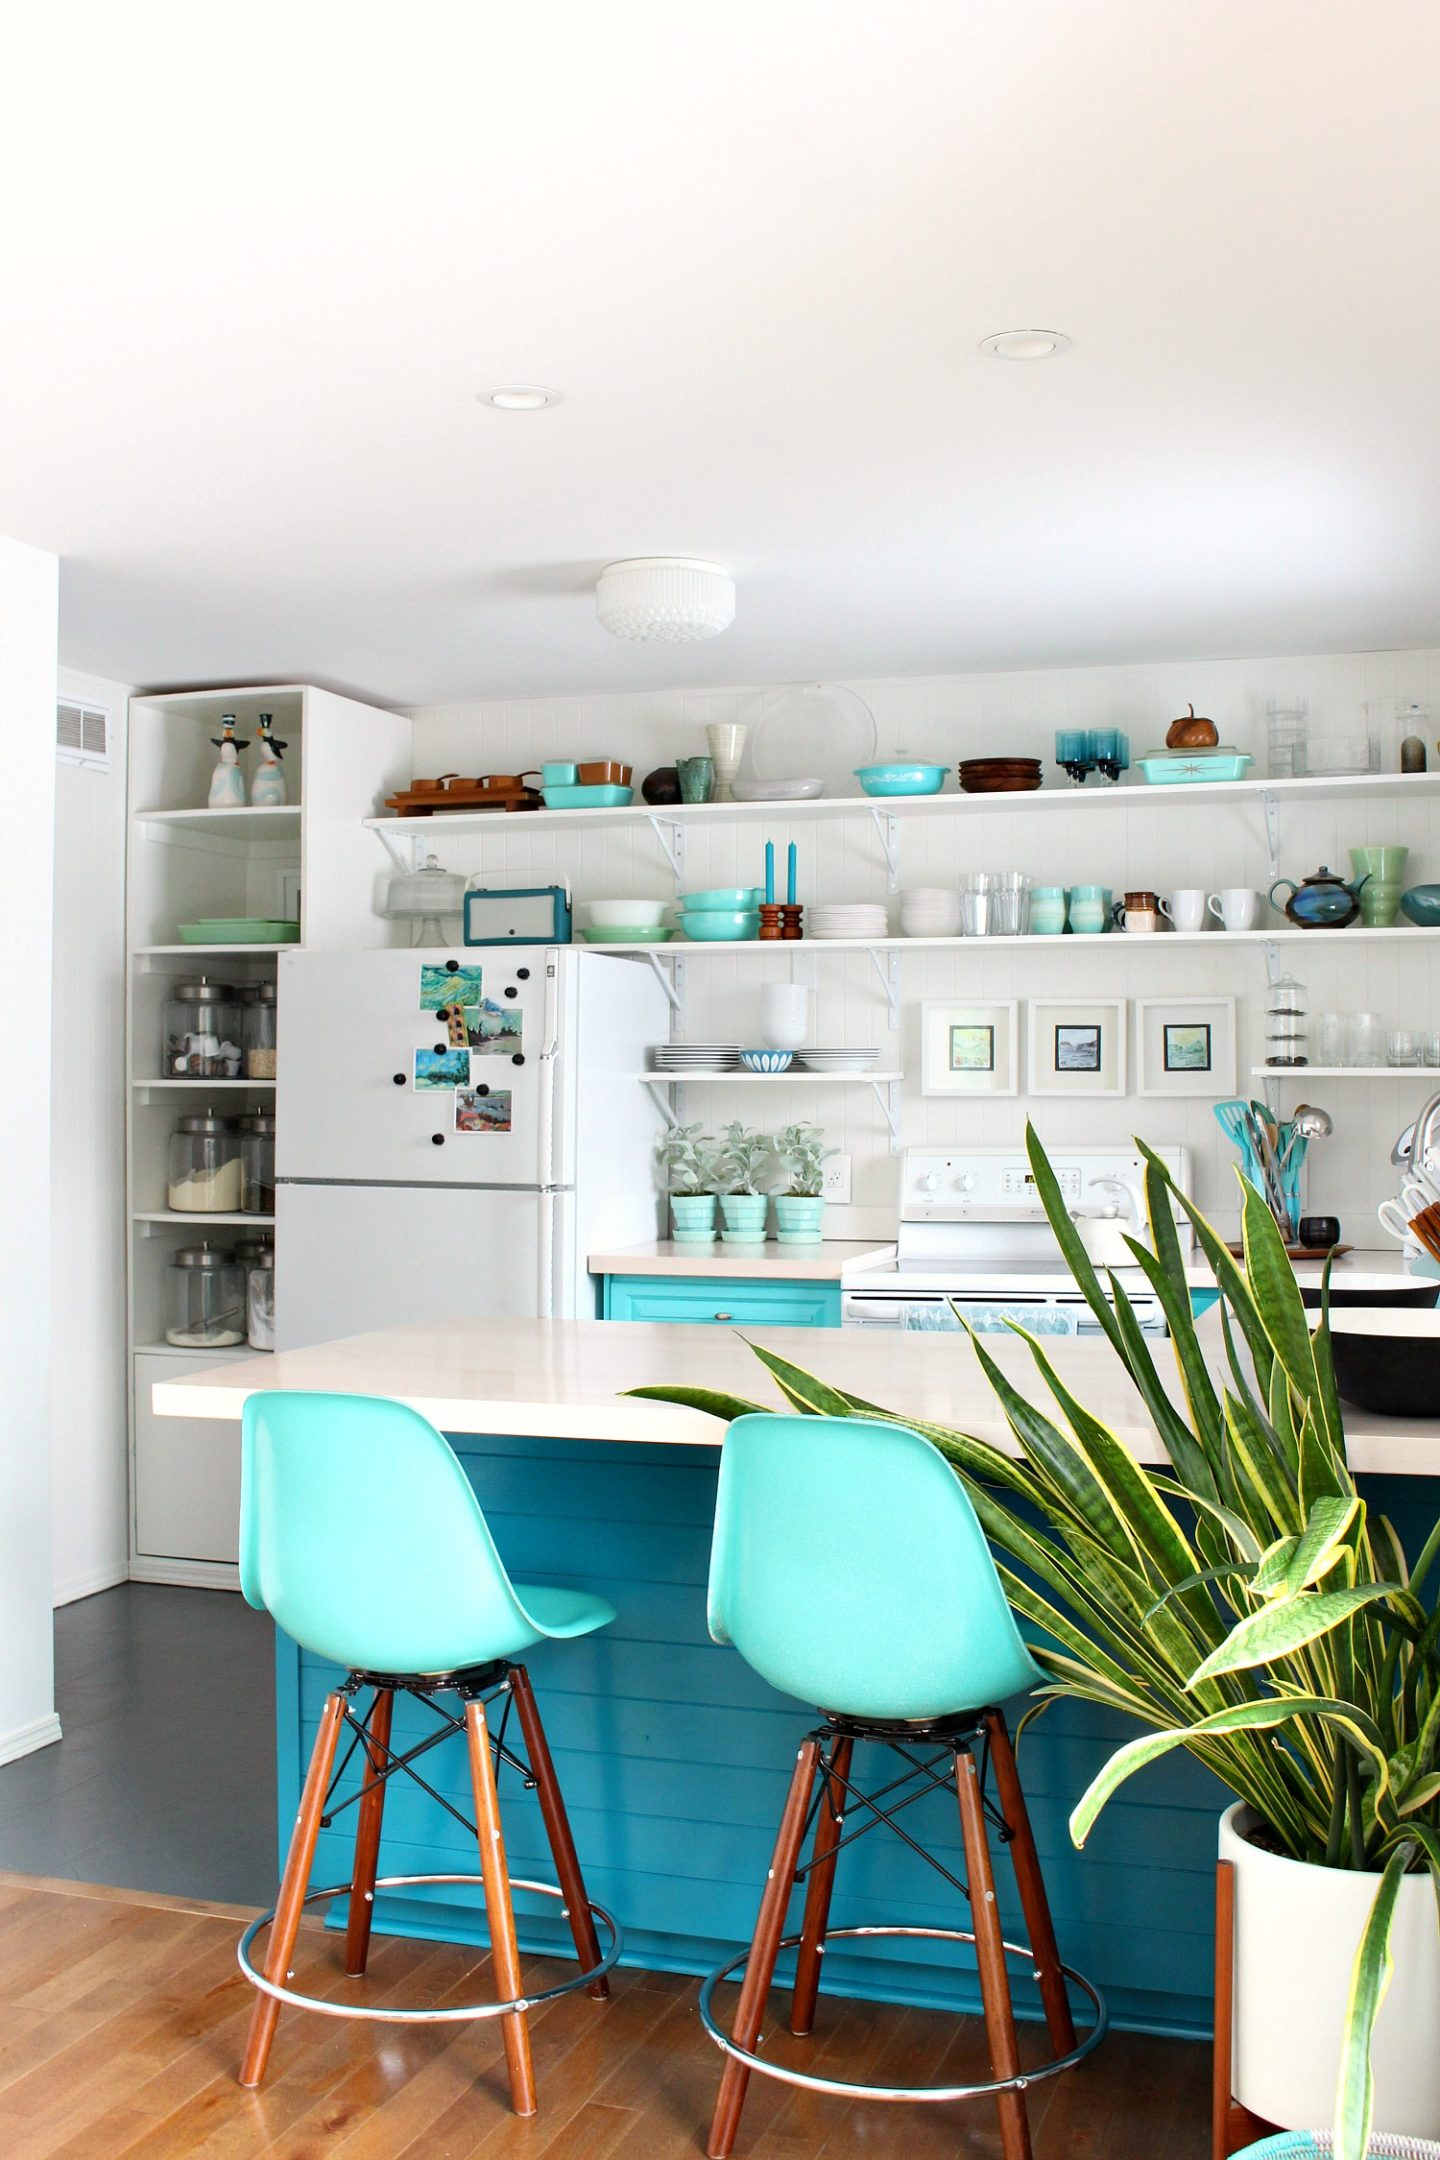 How to Install Tongue and Groove Paneling on Kitchen Cabinets in Teal and Aqua Kitchen Design